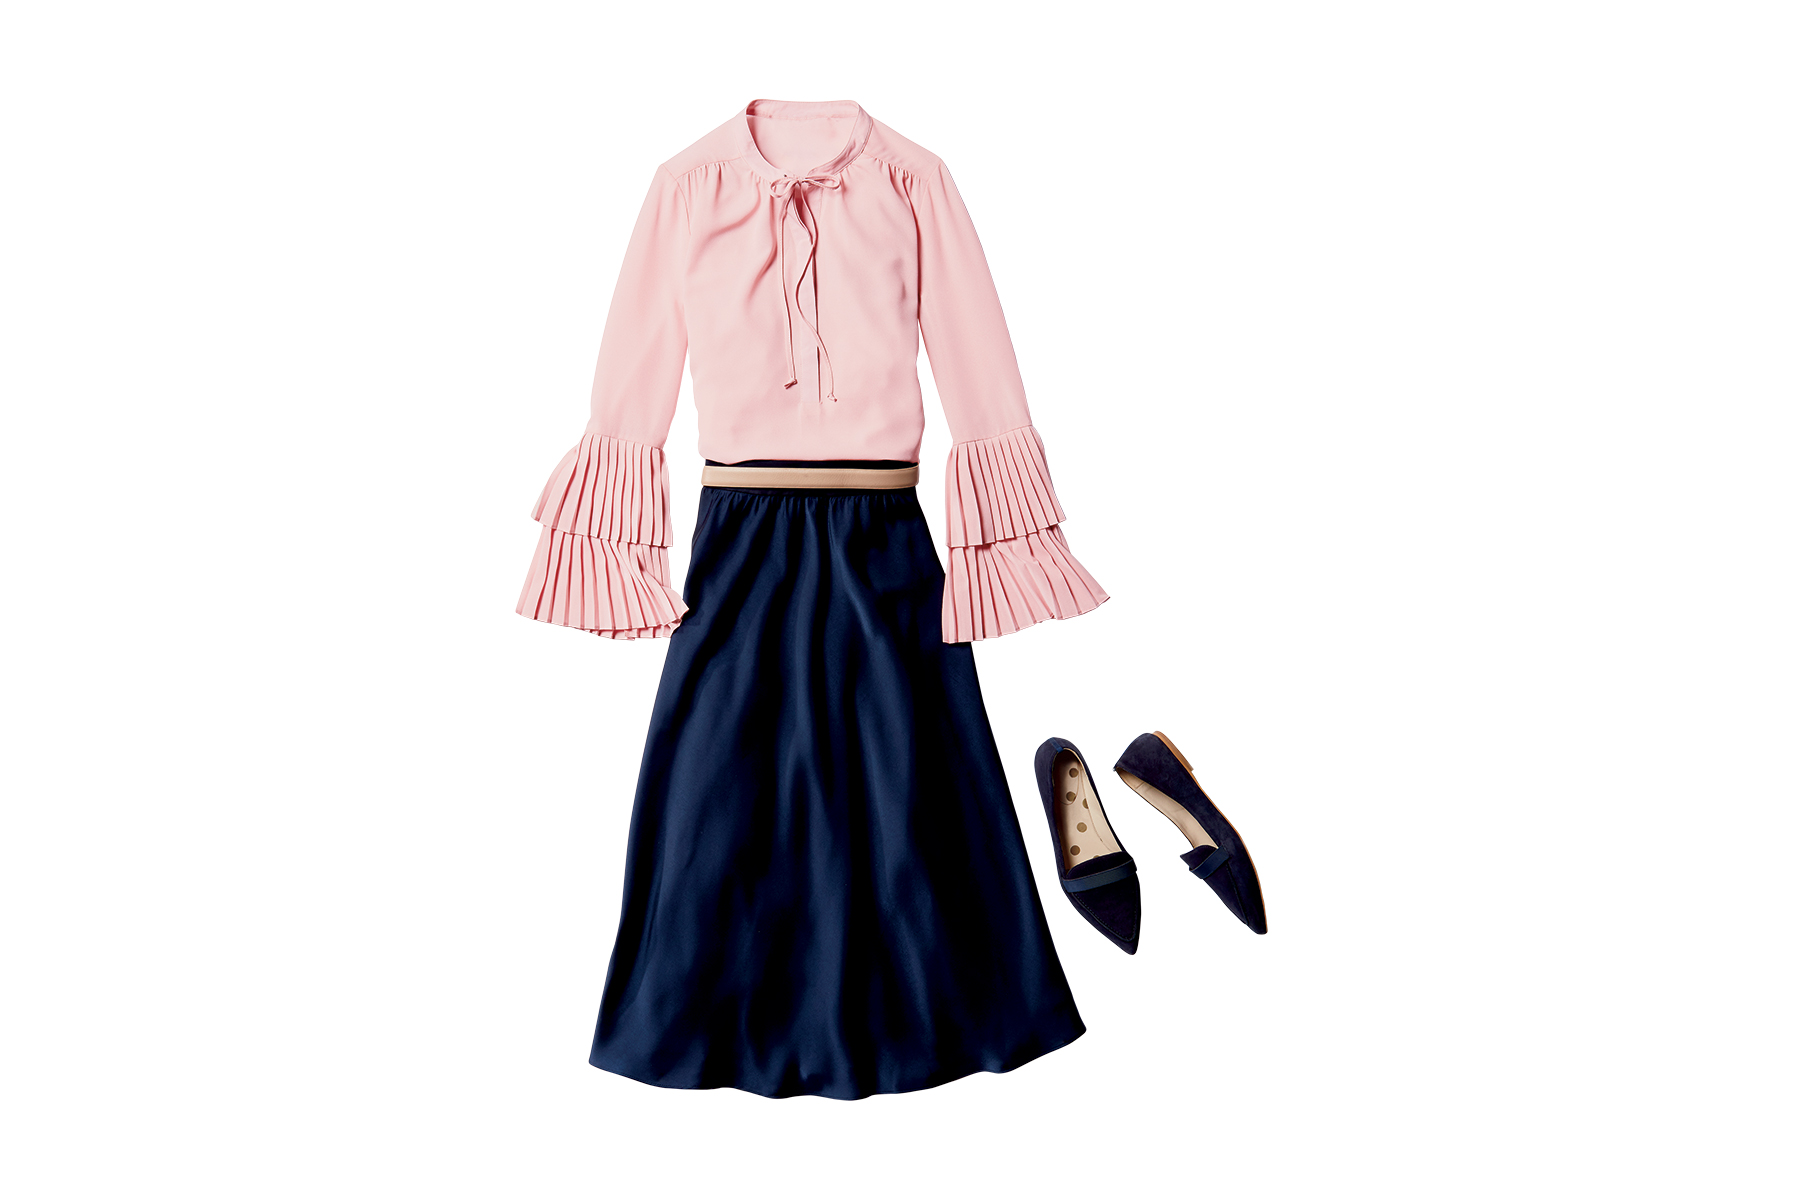 Blouse + Skirt + Flats